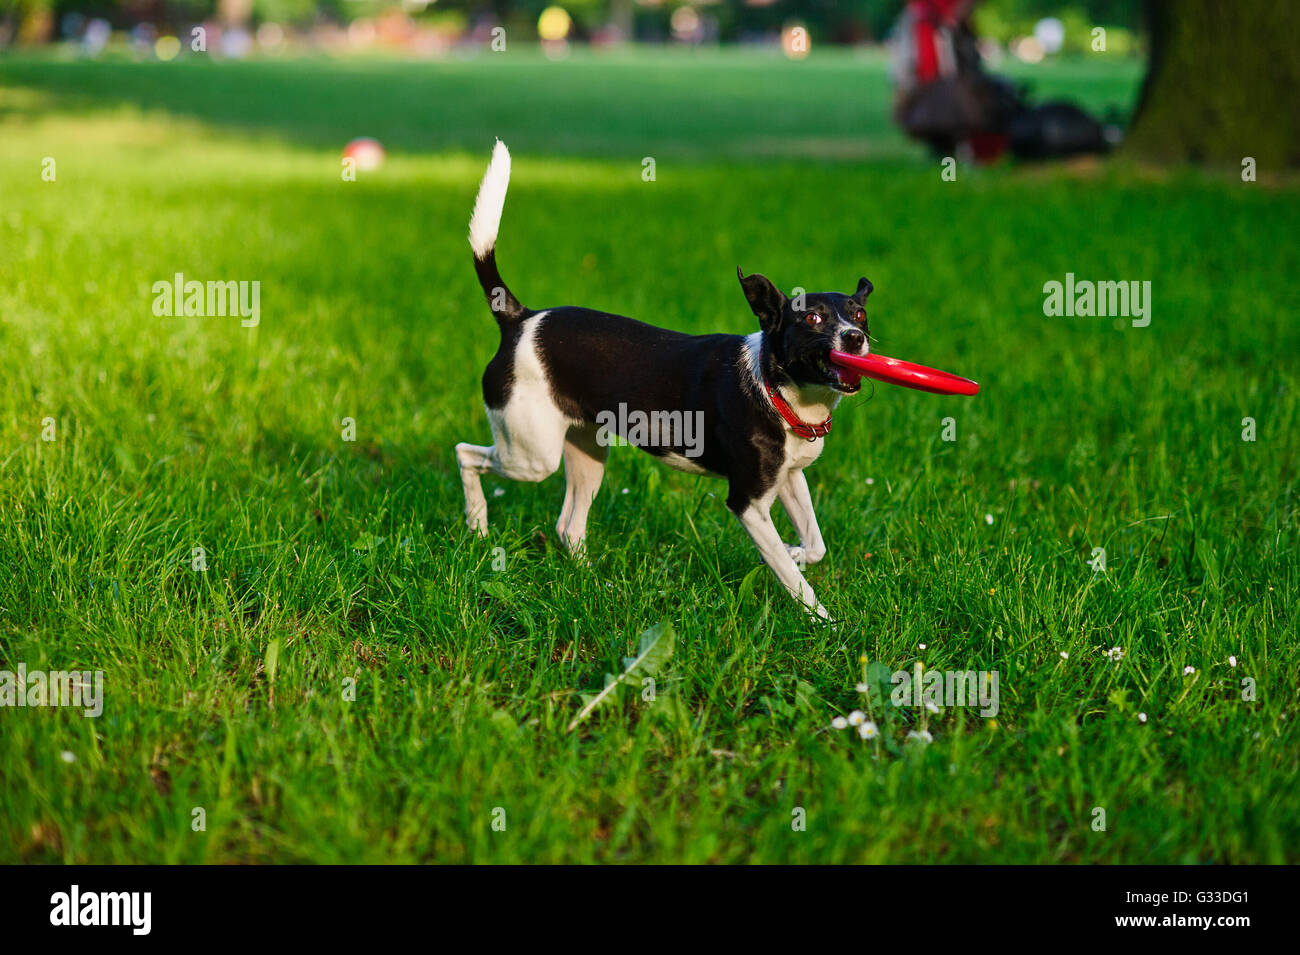 The dog bears frisbee in a mouth.Cute black and white doggy running through the green grass.She average size with - Stock Image